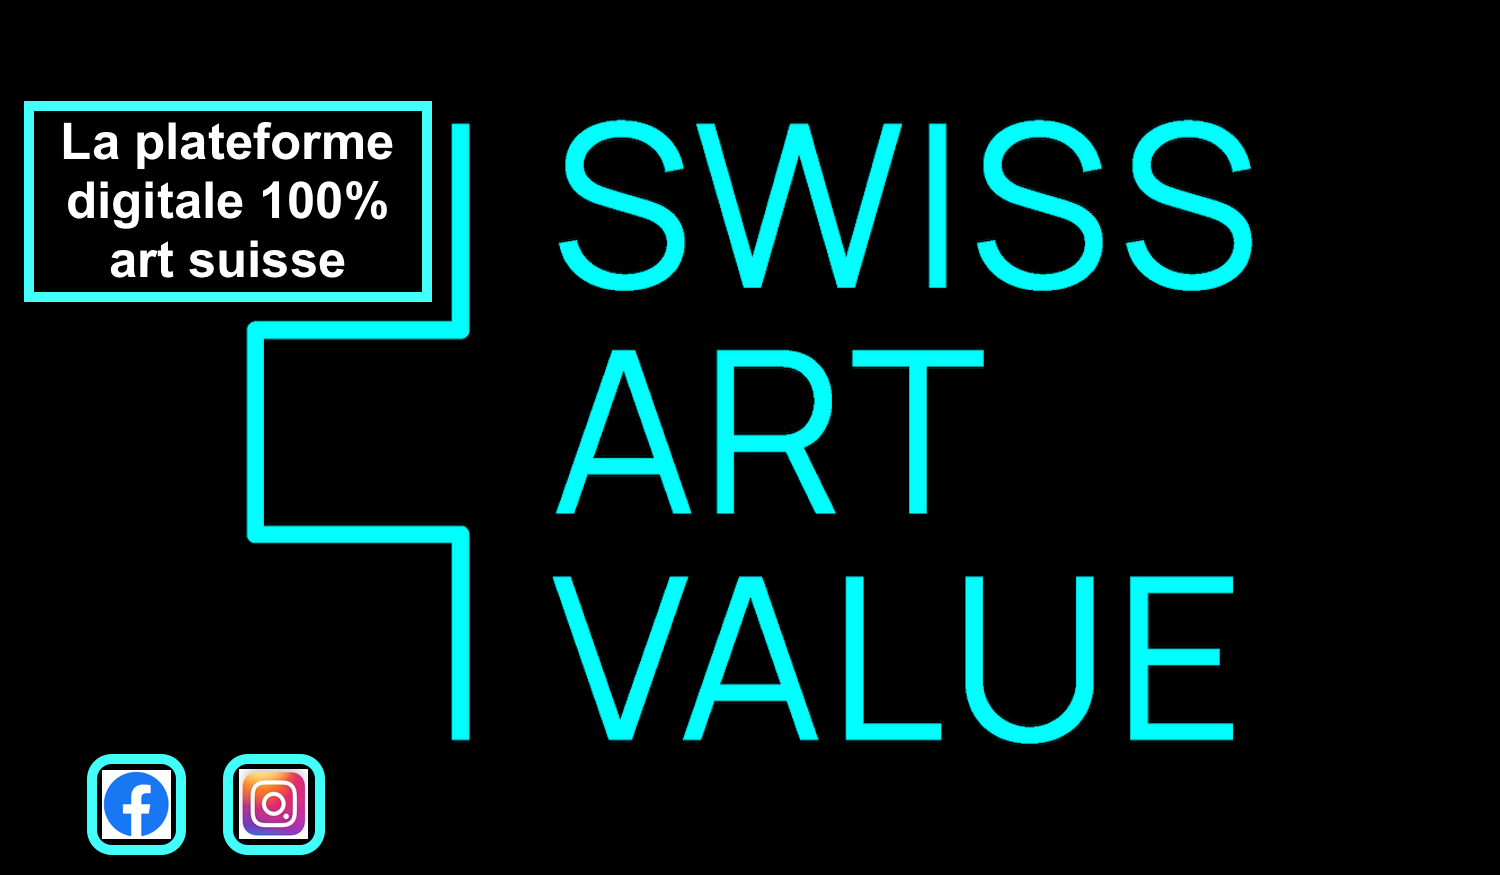 SWISS ART VALUE, plateforme digitale art suisse exclusivement